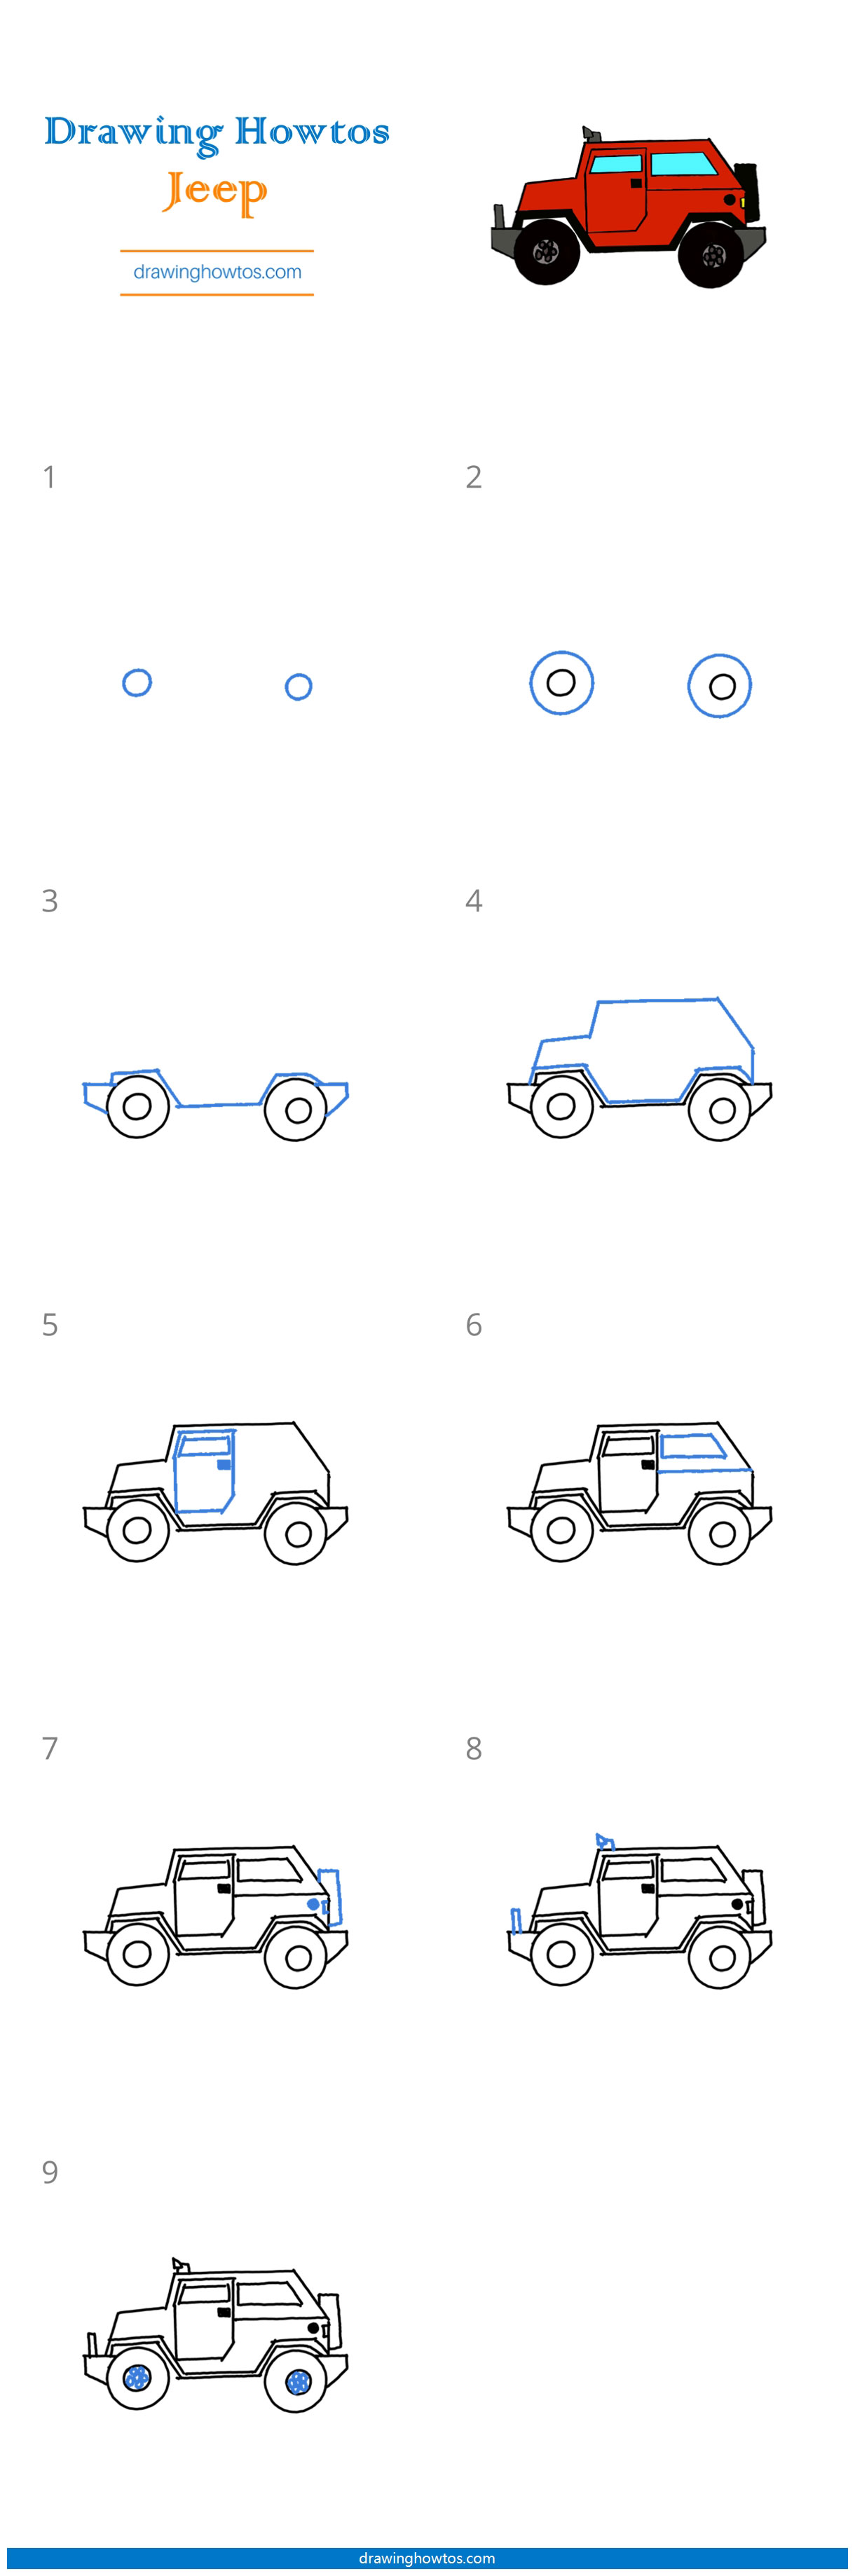 Easy Jeep Drawing : drawing, Drawing, Guides, Howtos